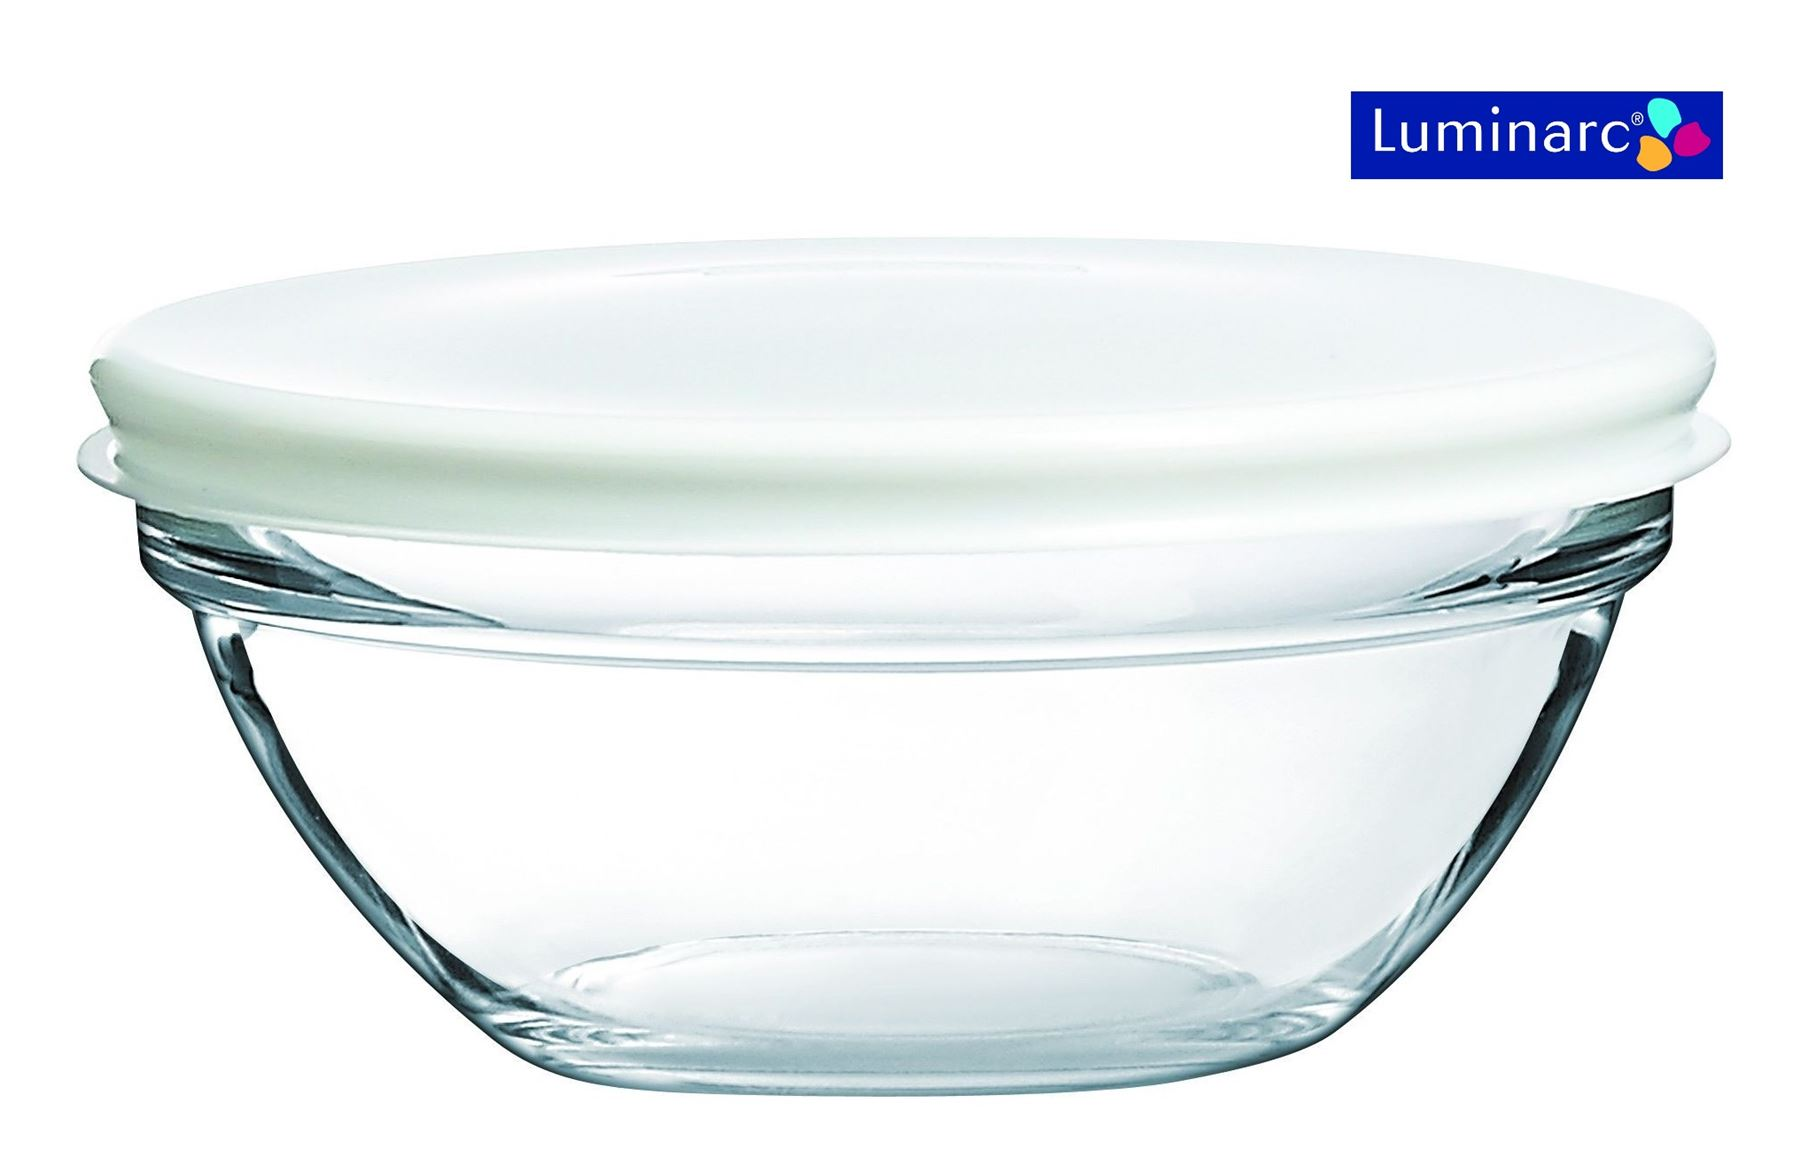 Luminarc Glass Stacking Storage Bowls Containers with Lid ...